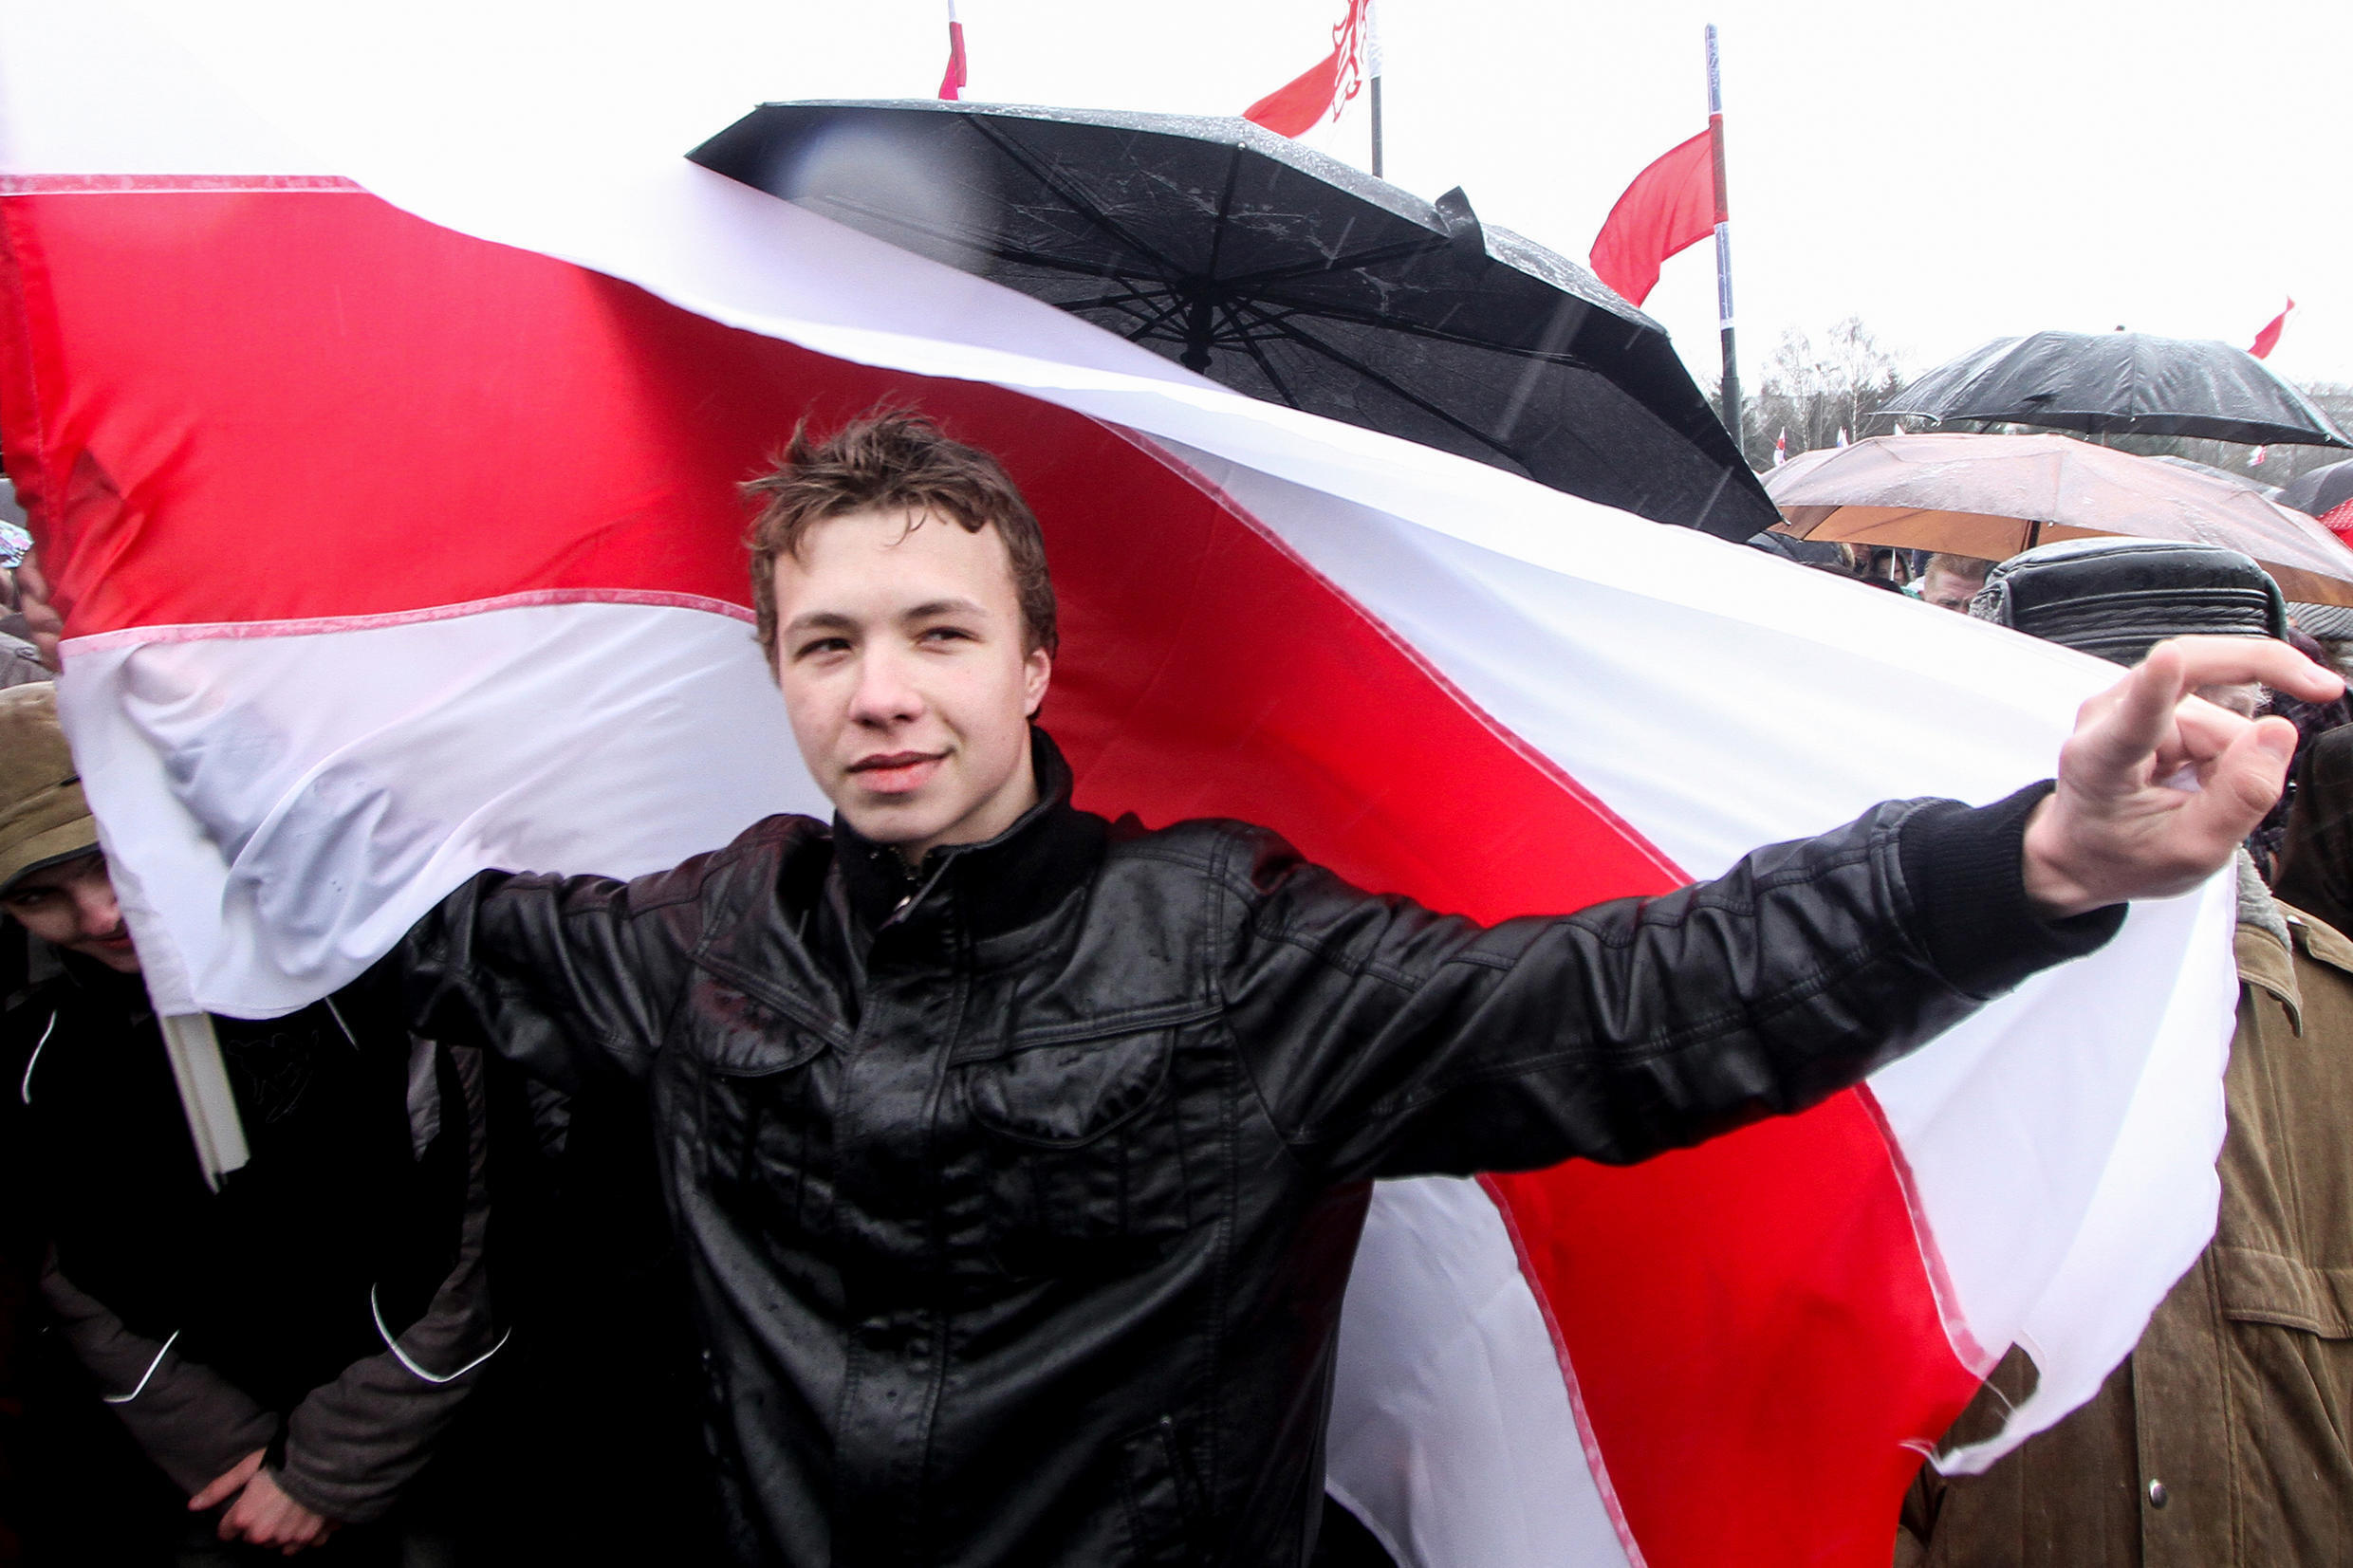 Belarusian opposition activist Roman Protasevitch, 26, had been living in exile in Poland